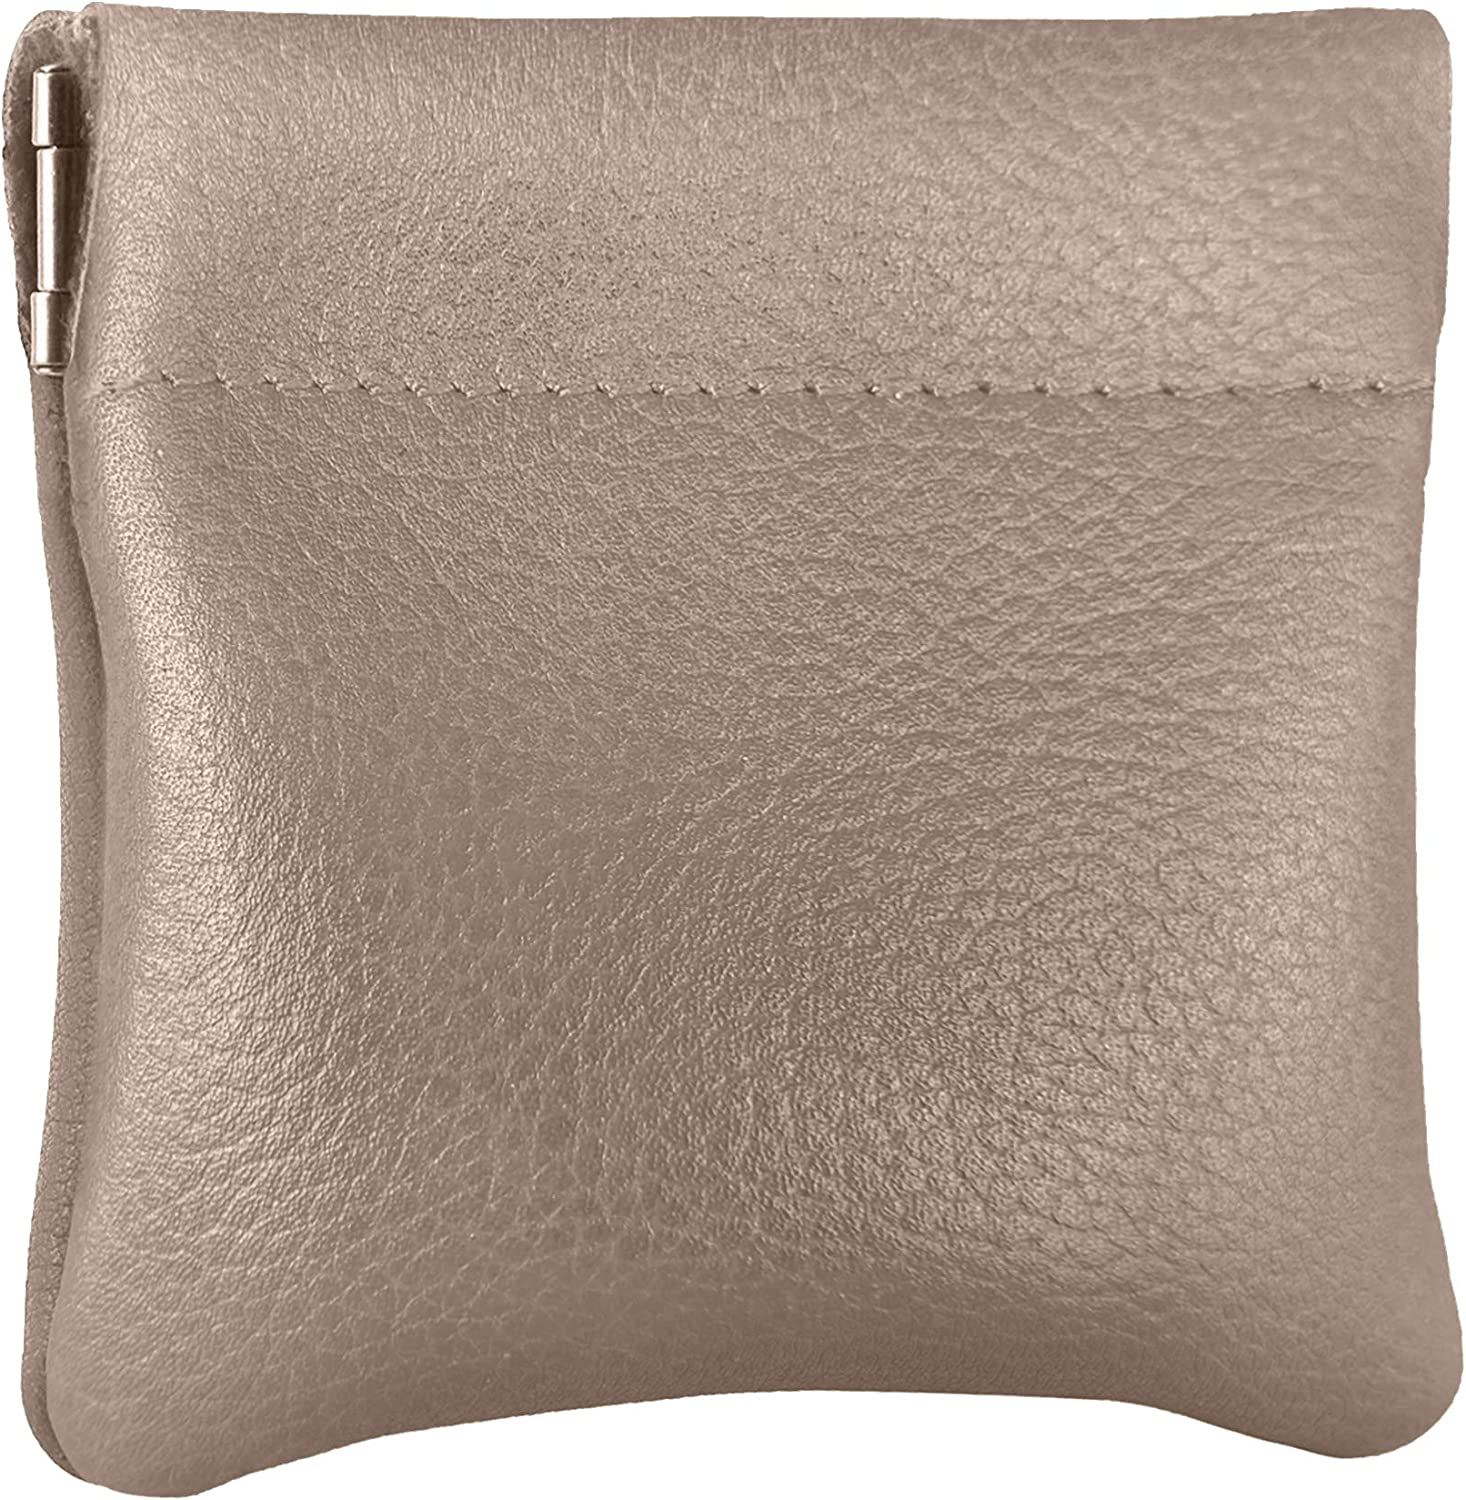 Nabob Leather Genuine Leather Squeeze Coin Purse, Coin Pouch Made IN U.S.A. Change Holder For Men/Woman Size 3.5 X 3.5 (Grey)